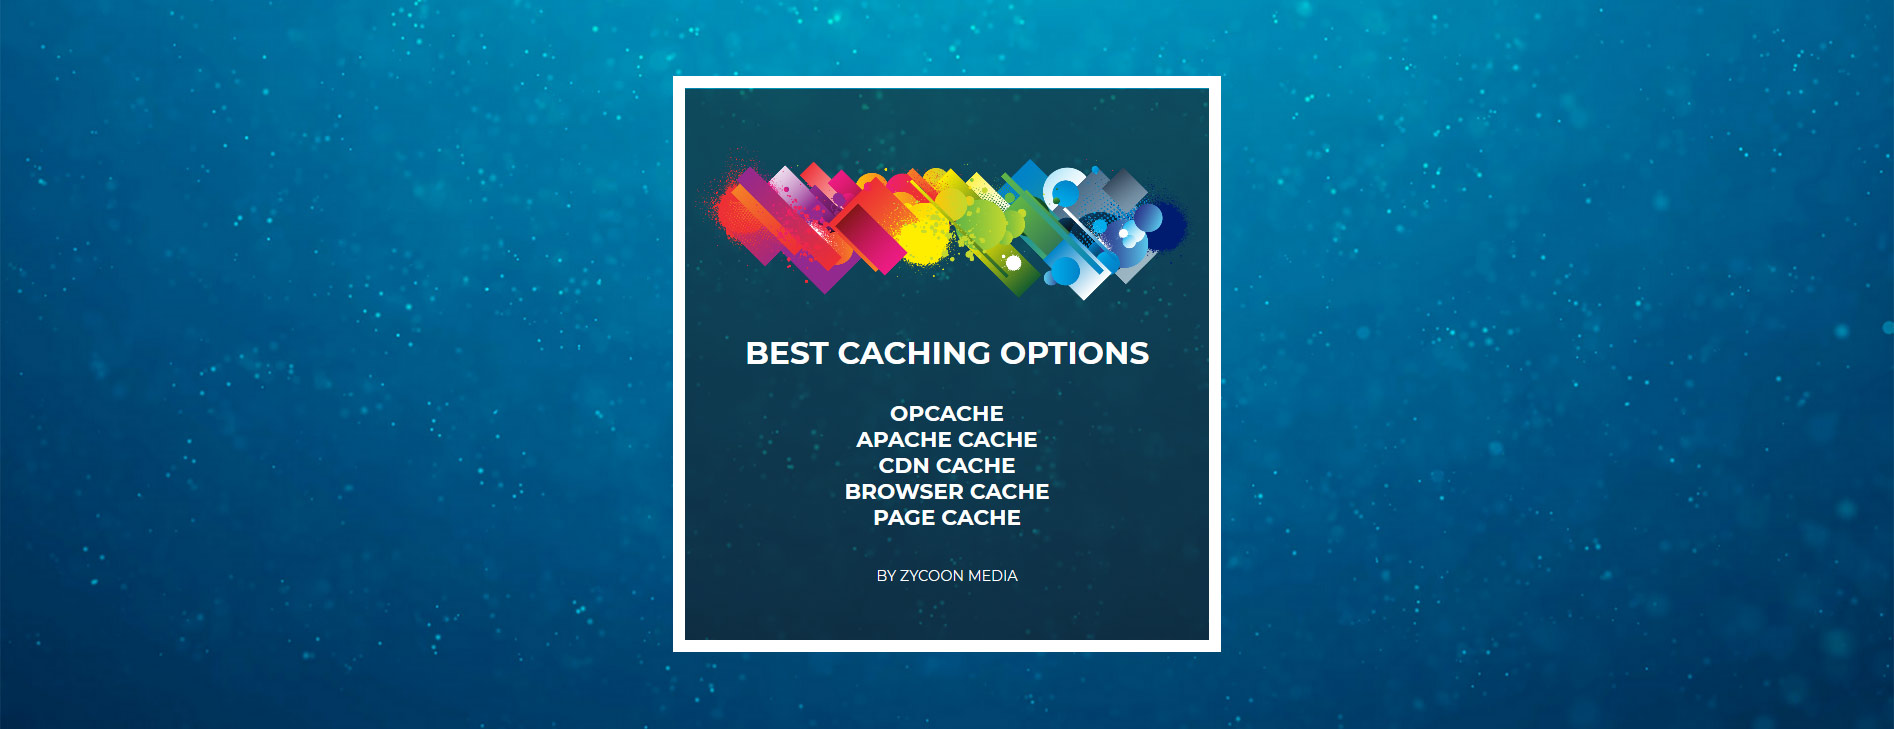 Best Caching Opcache Cdn Apache Page Browser Cache